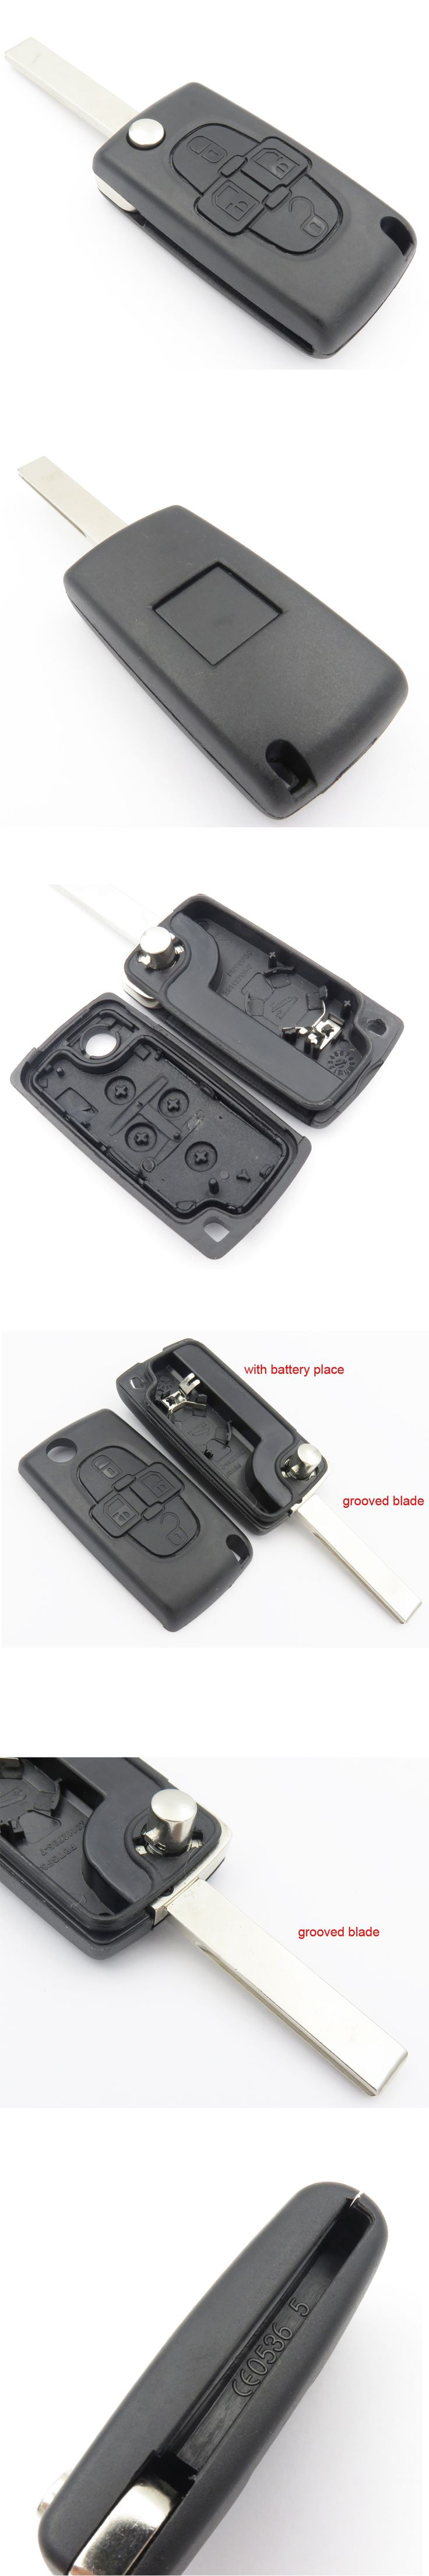 1pcs Replacement 4 button flip key fob case for Peugeot 1007 807 remote new case for Peugeot Key Case Cover Cocolockey